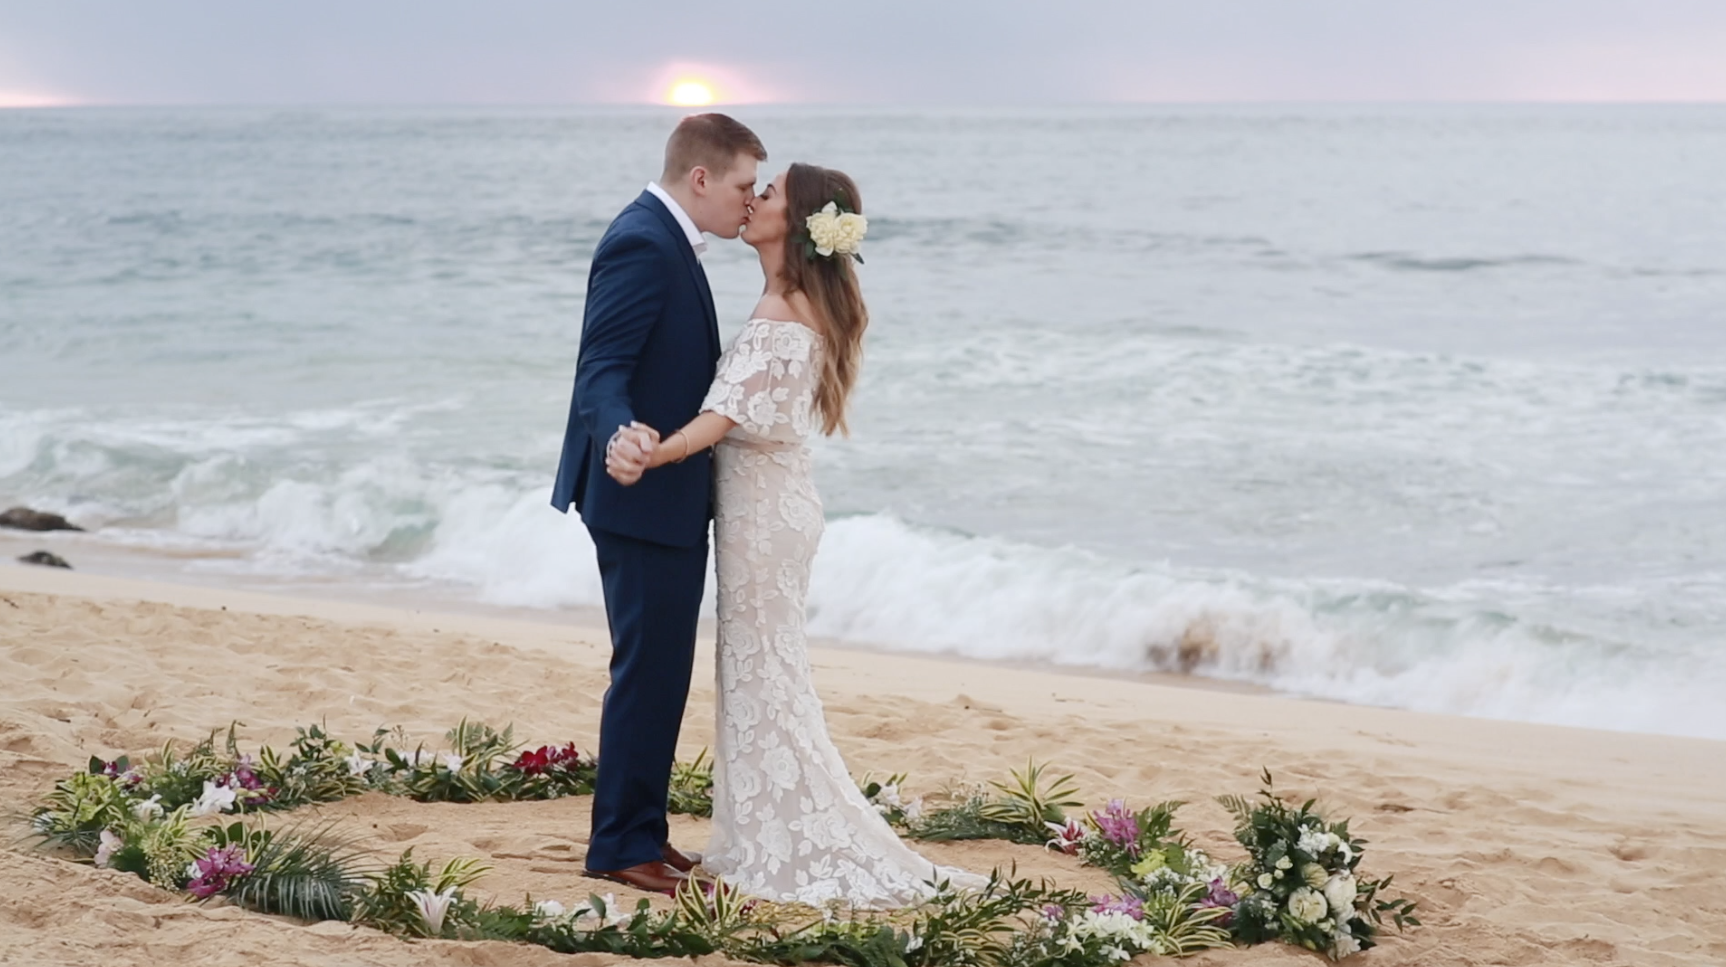 Sunrise beach wedding // Kauai, Hawaii